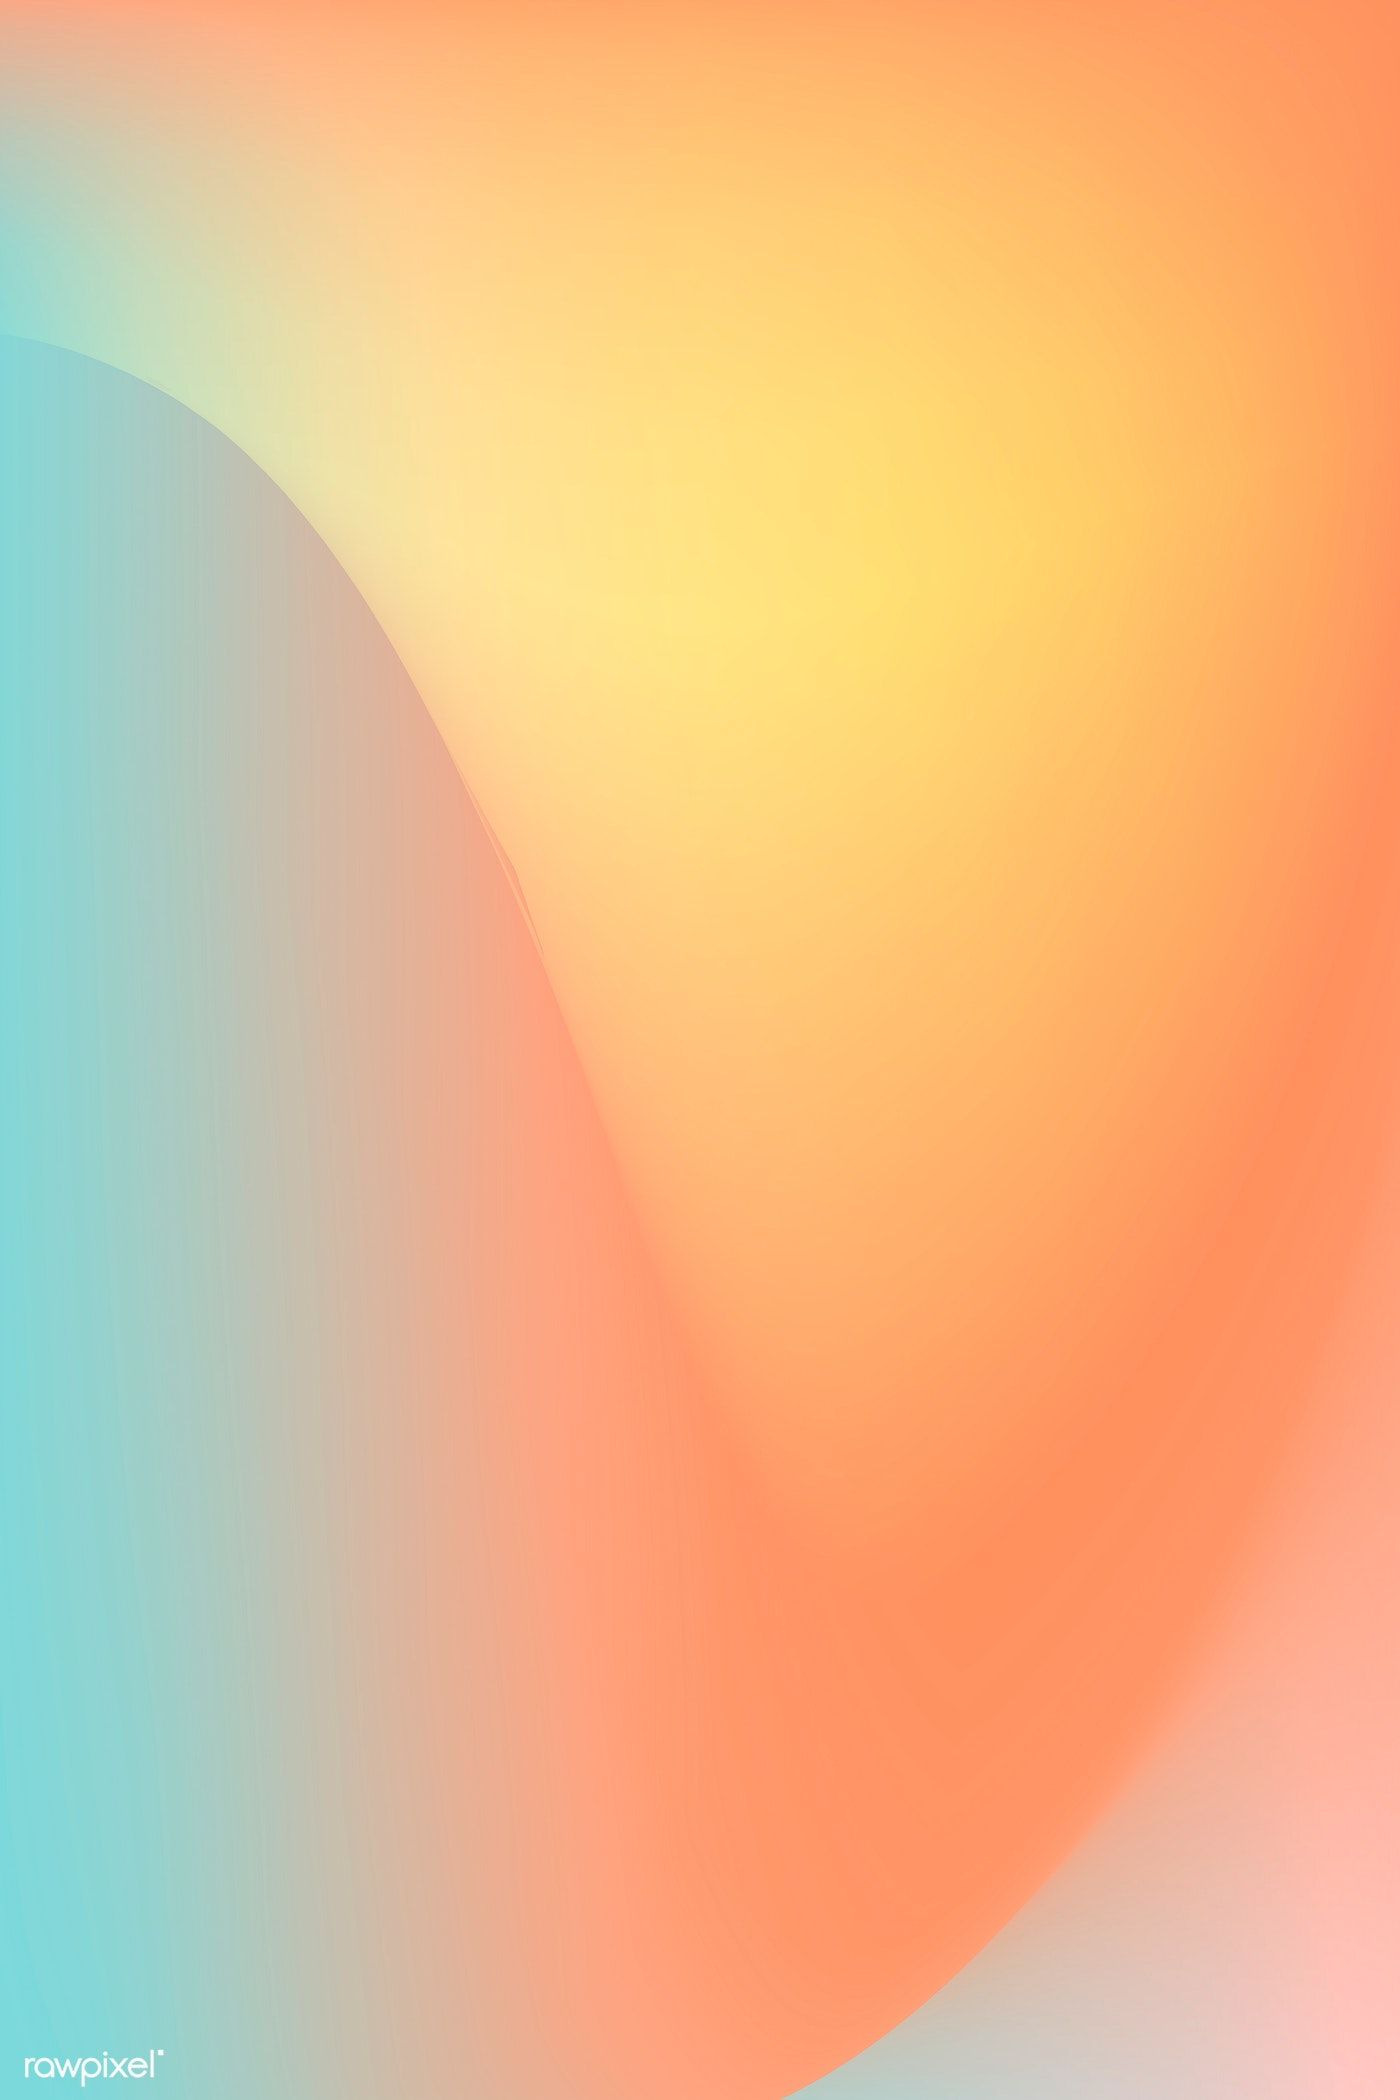 Summer gradient pattern background vector | premium image by rawpixel.com / Kappy Kappy